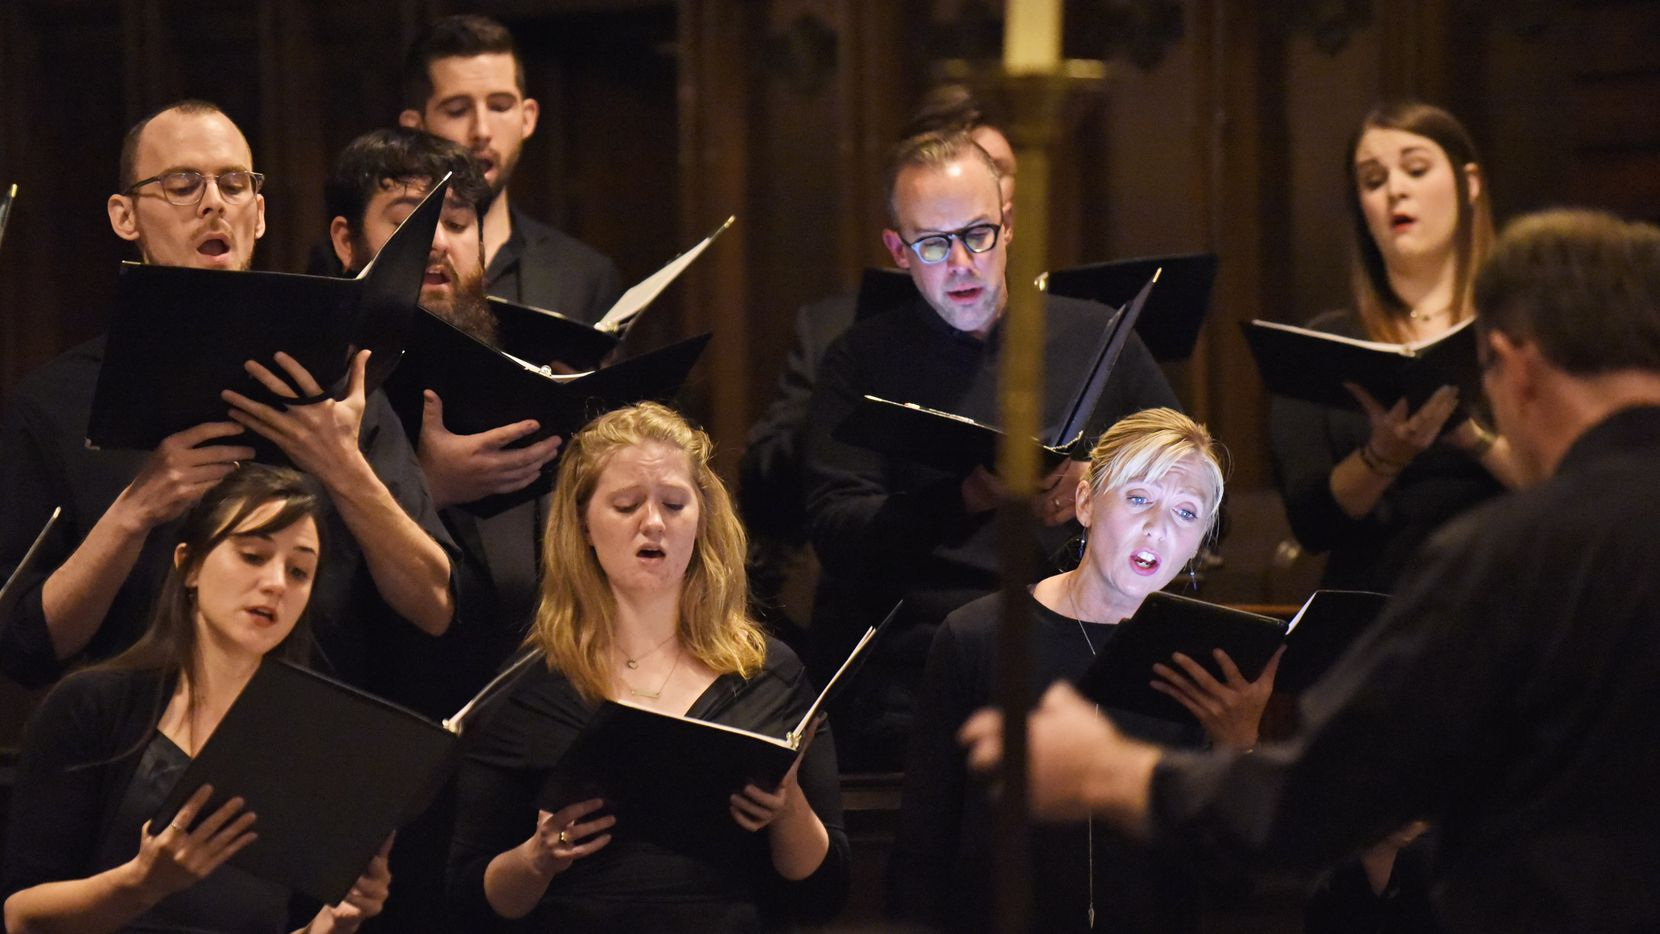 The Chamber Choir Incarnatus, directed by Scott Dettra, performs at the Church of Incarnation in Dallas on Jan. 24, 2020.